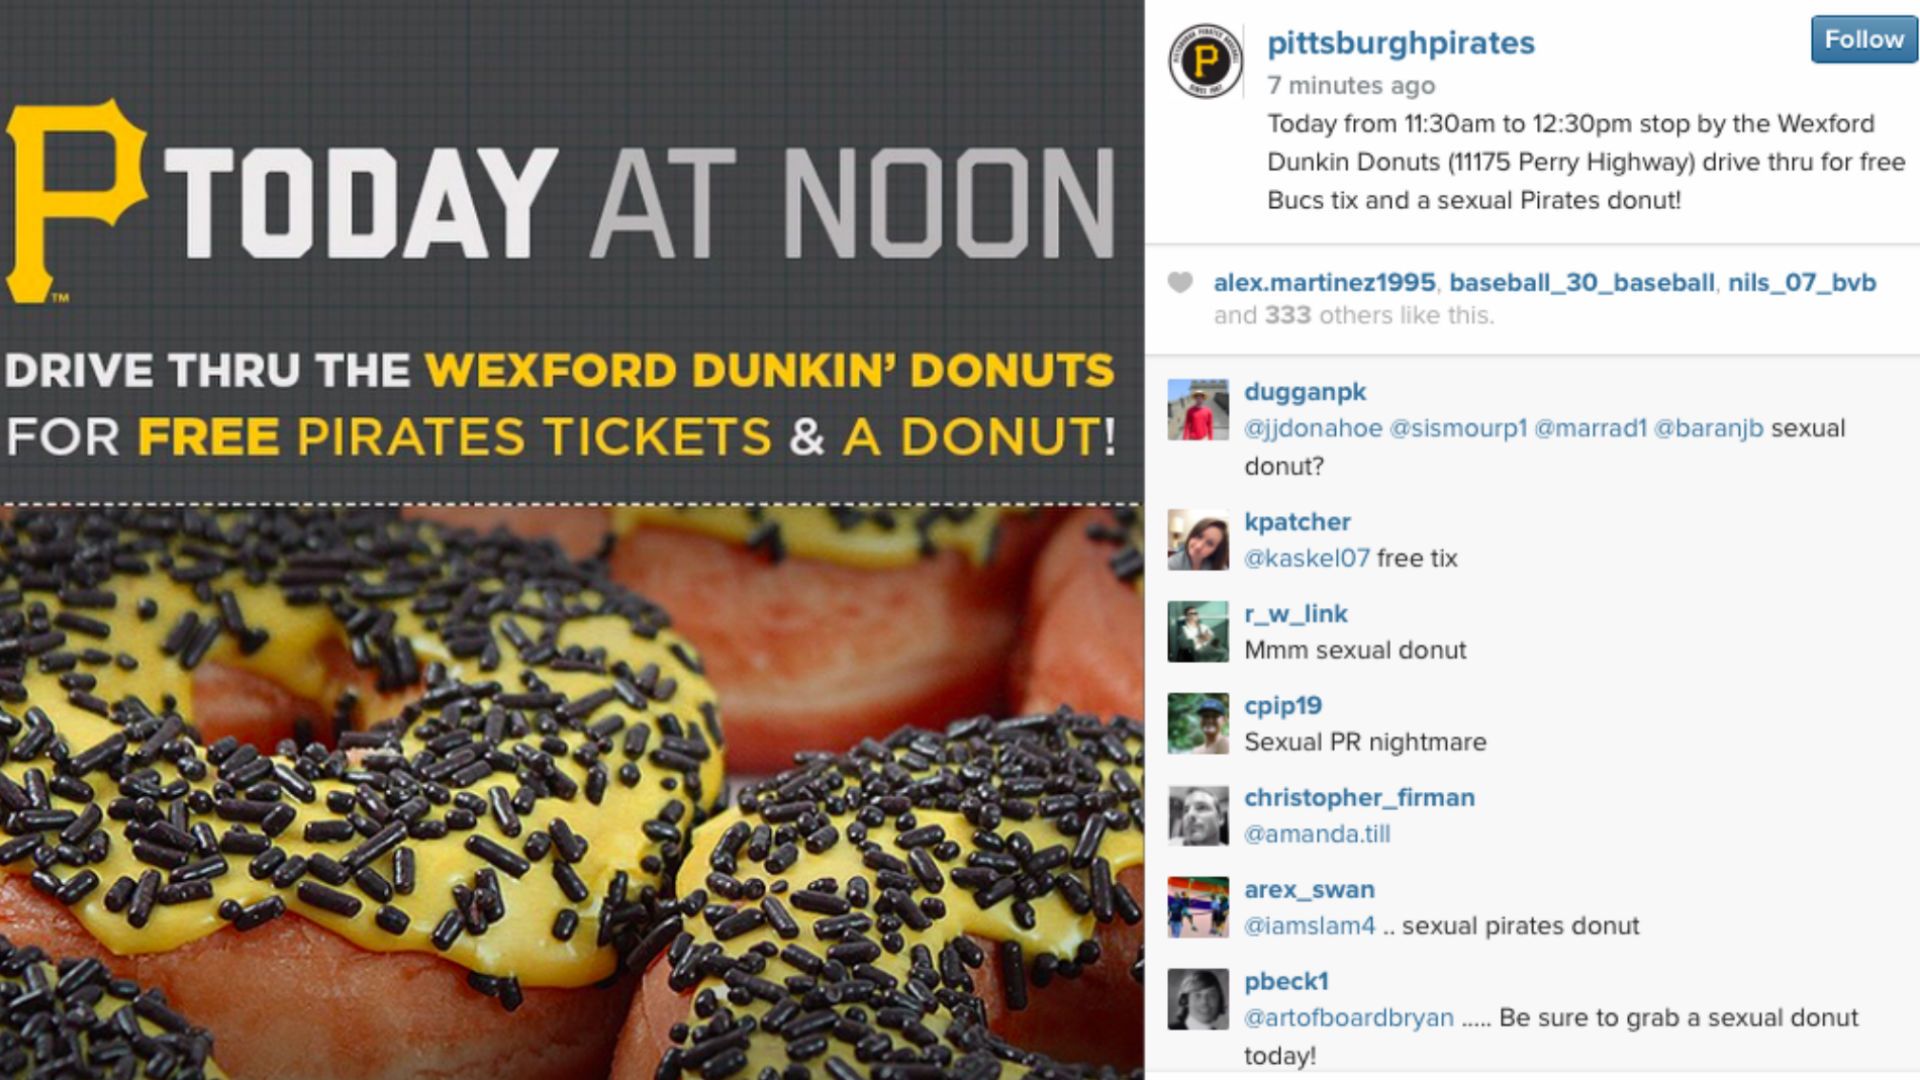 Pirates accidentally offer 'sexual donuts' in fan promotion